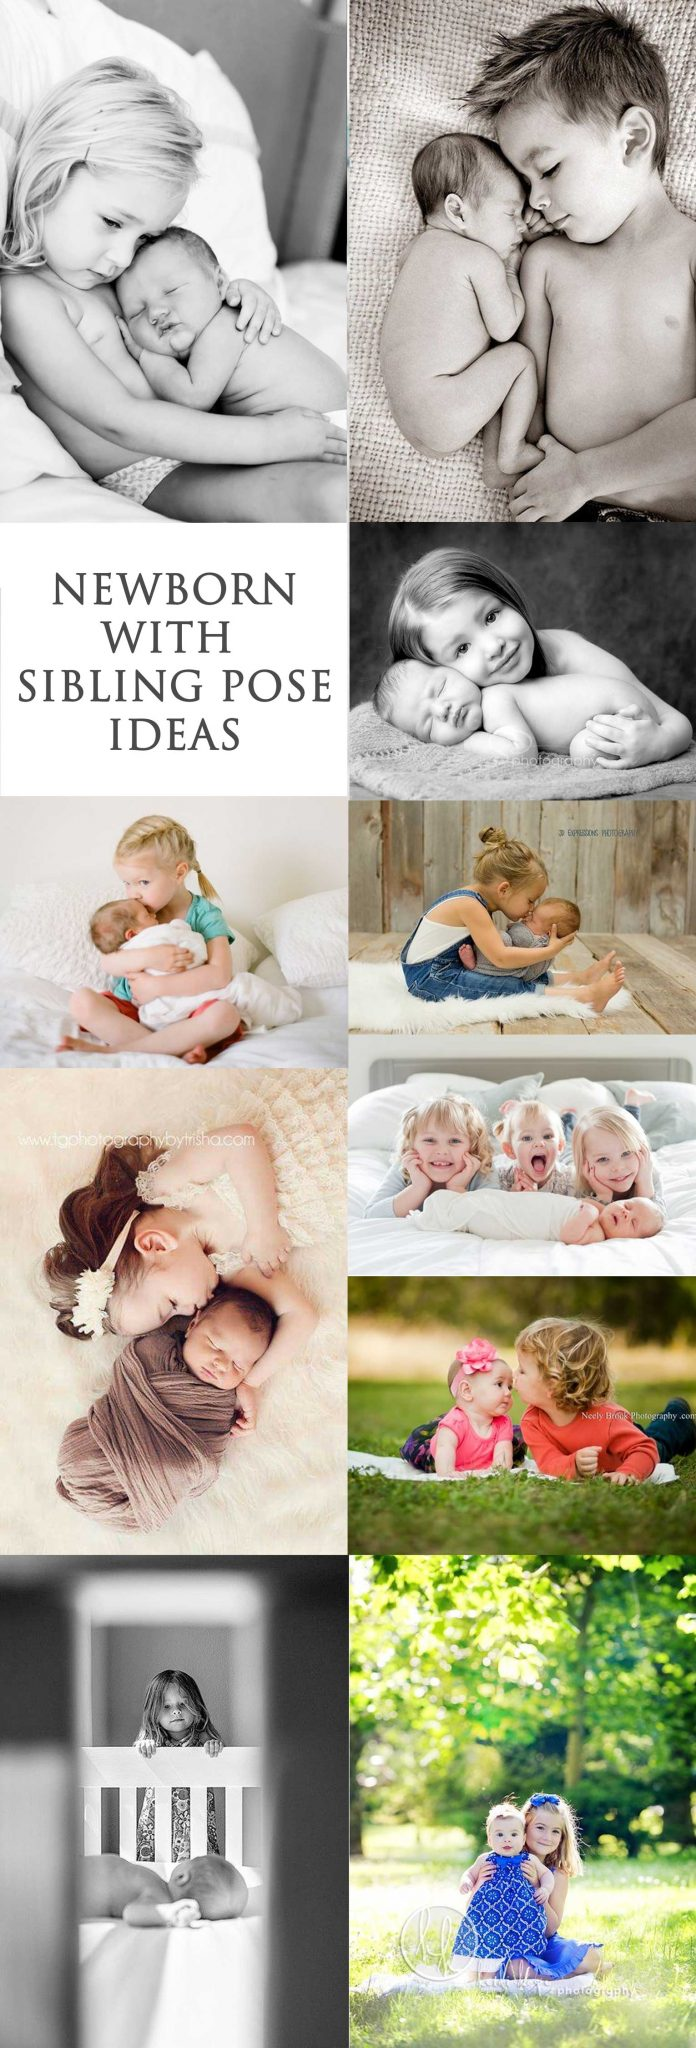 Pose Ideas with Siblings